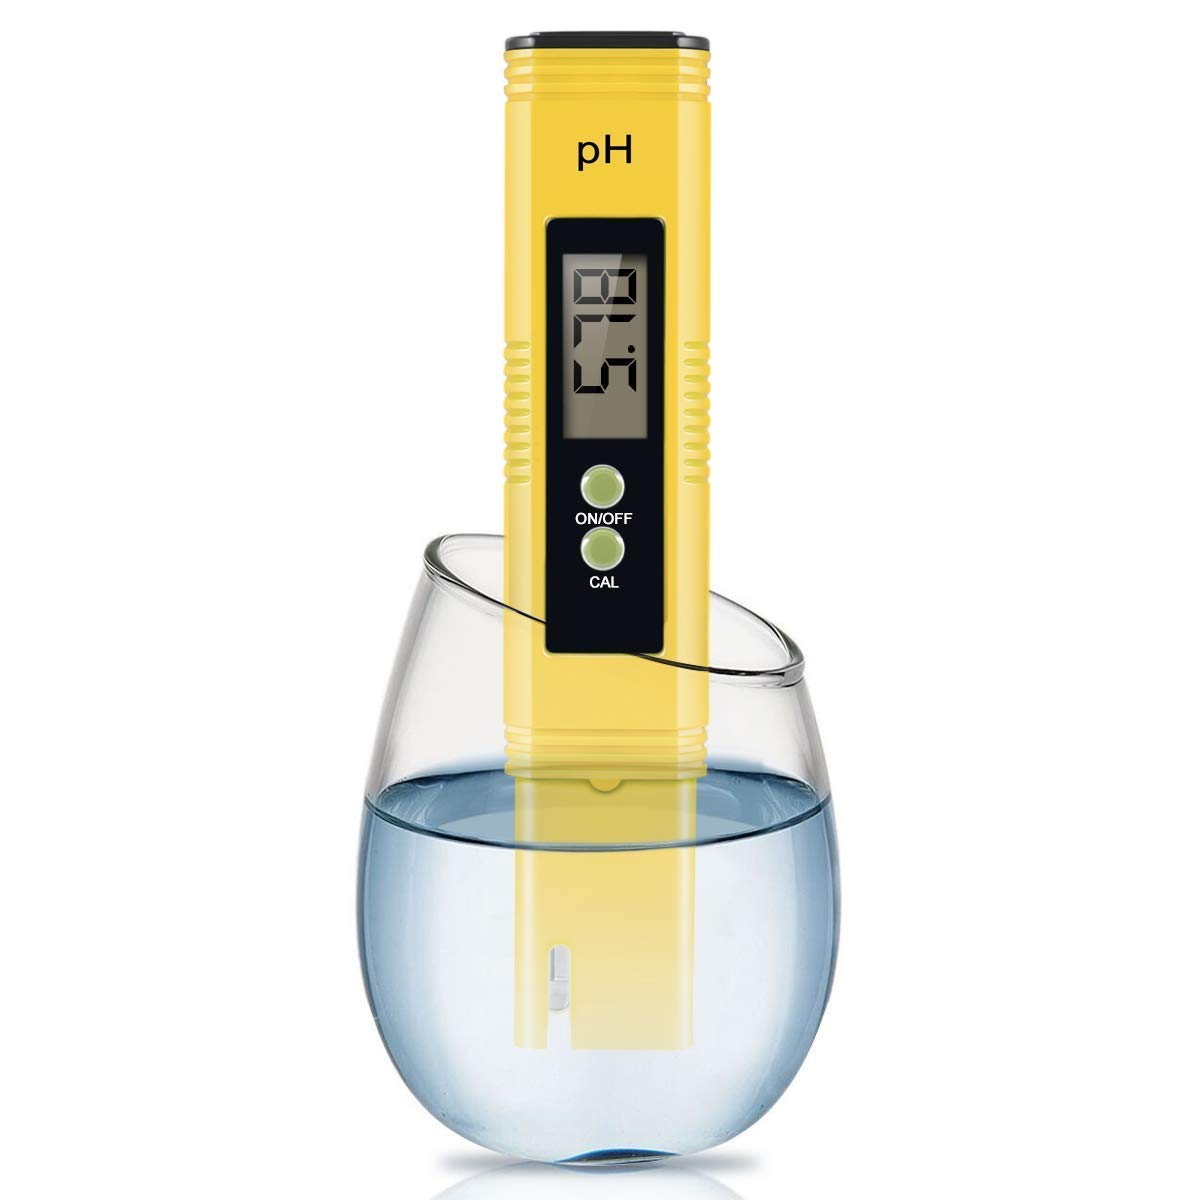 Digital PH Meter, PH Meter 0.01 PH High Accuracy Water Quality Tester with 0-14 PH Measurement Range for Household Drinking, Pool and Aquarium Water PH Tester Design with ATC (2019-Yellow) by Cakie